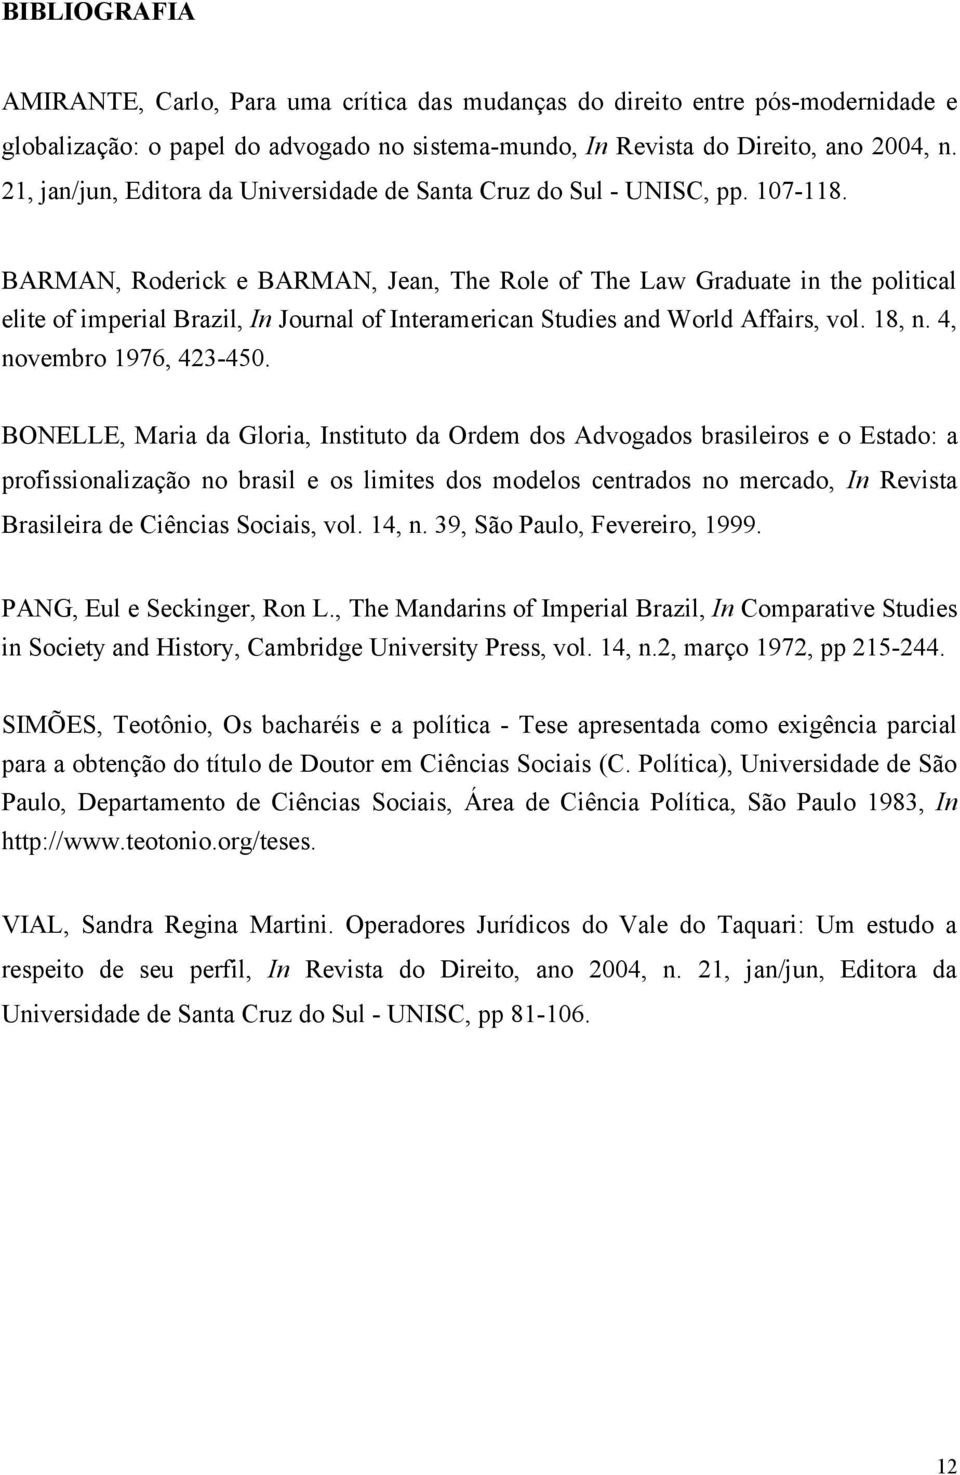 BARMAN, Roderick e BARMAN, Jean, The Role of The Law Graduate in the political elite of imperial Brazil, In Journal of Interamerican Studies and World Affairs, vol. 18, n. 4, novembro 1976, 423-450.